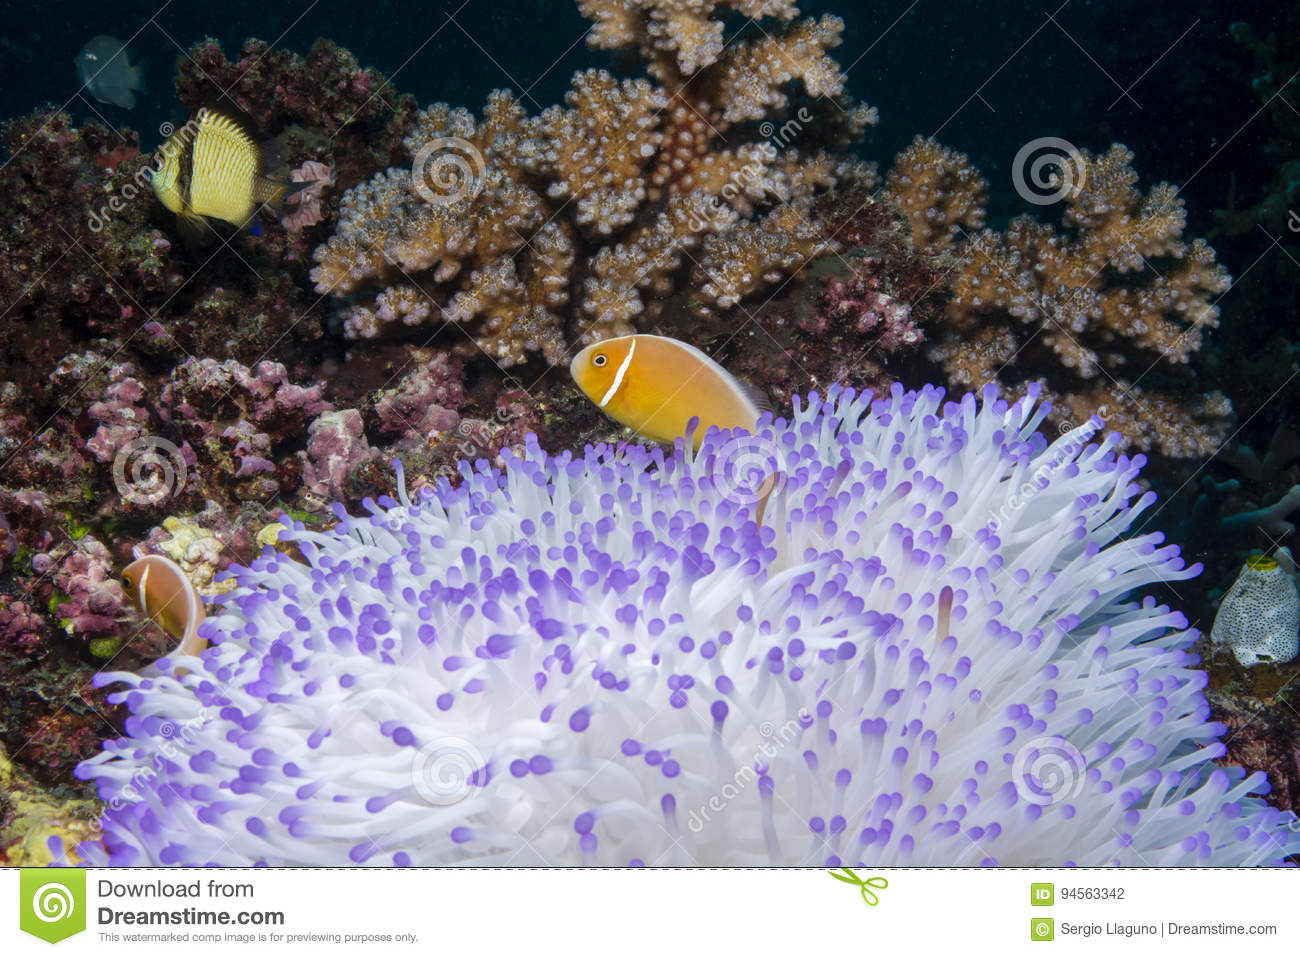 Anemonefish rose